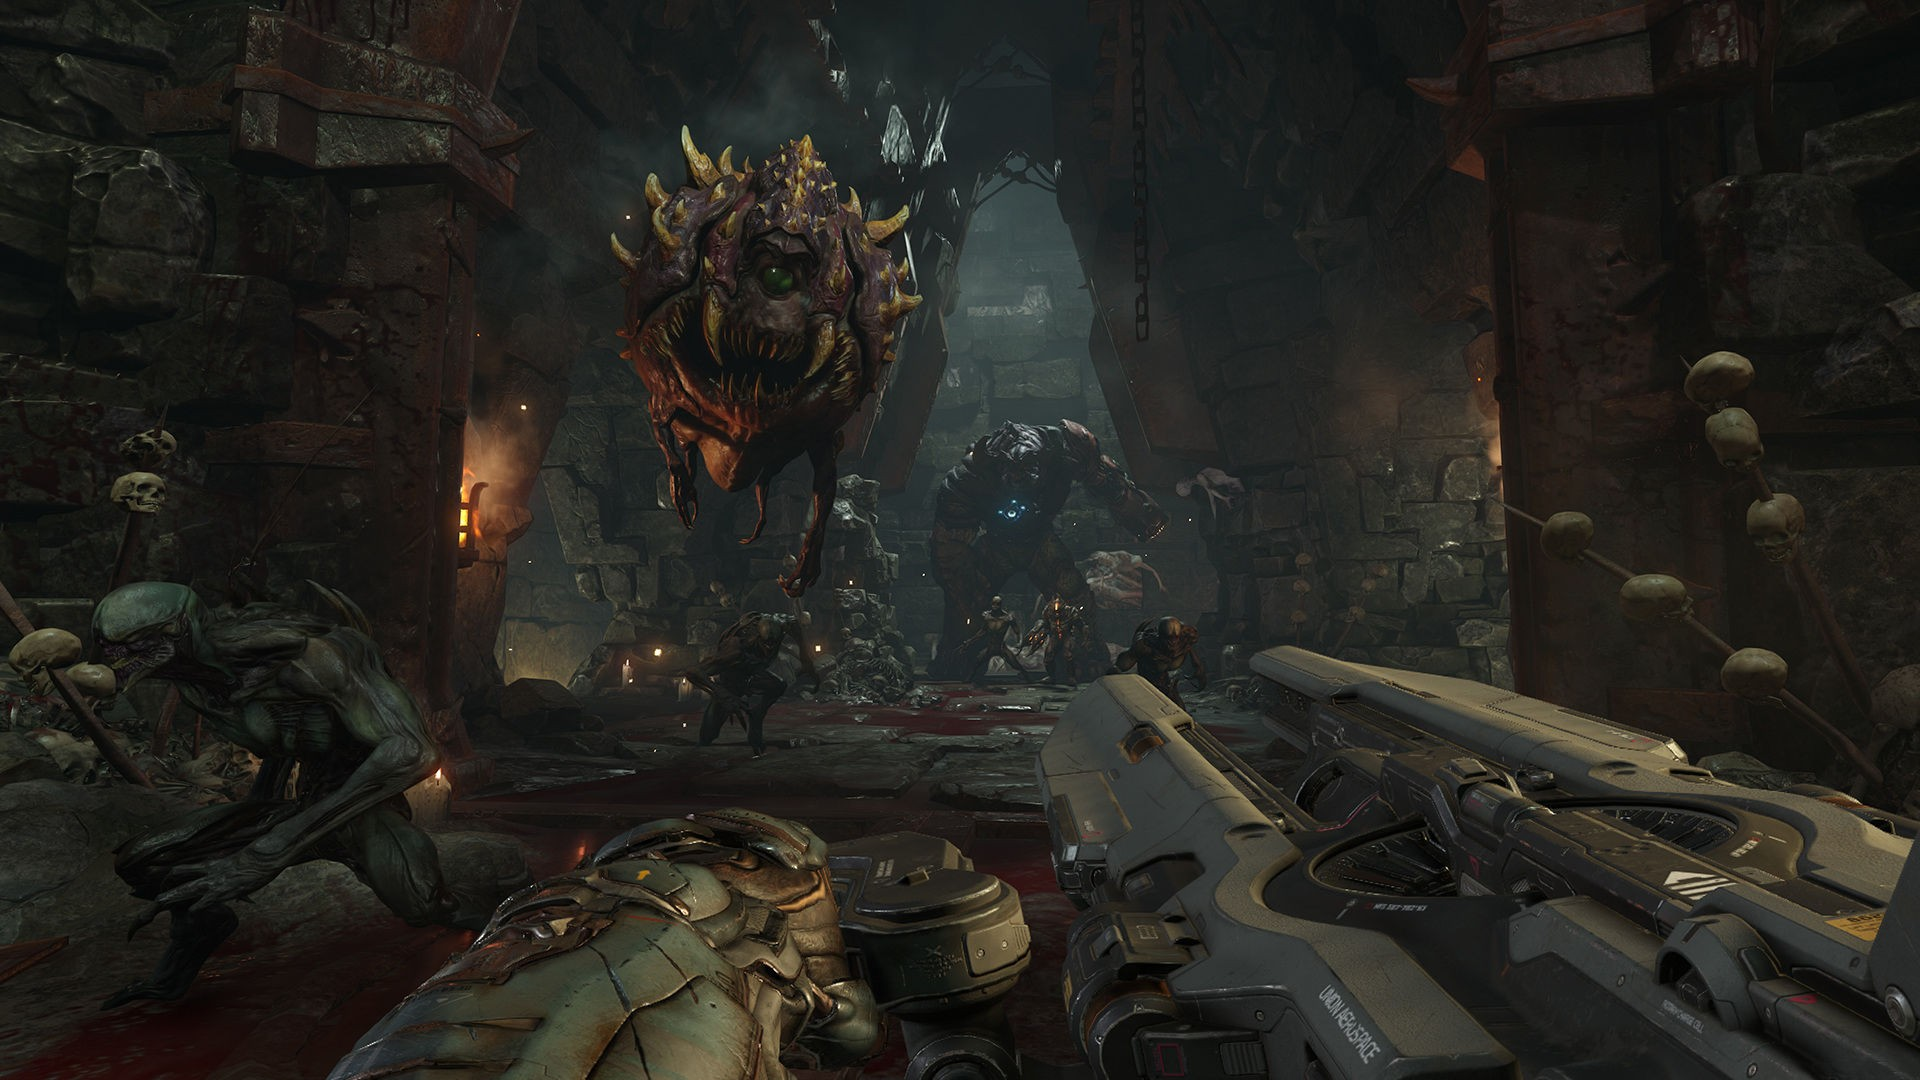 doom 4 video game, hd games, 4k wallpapers, images, backgrounds